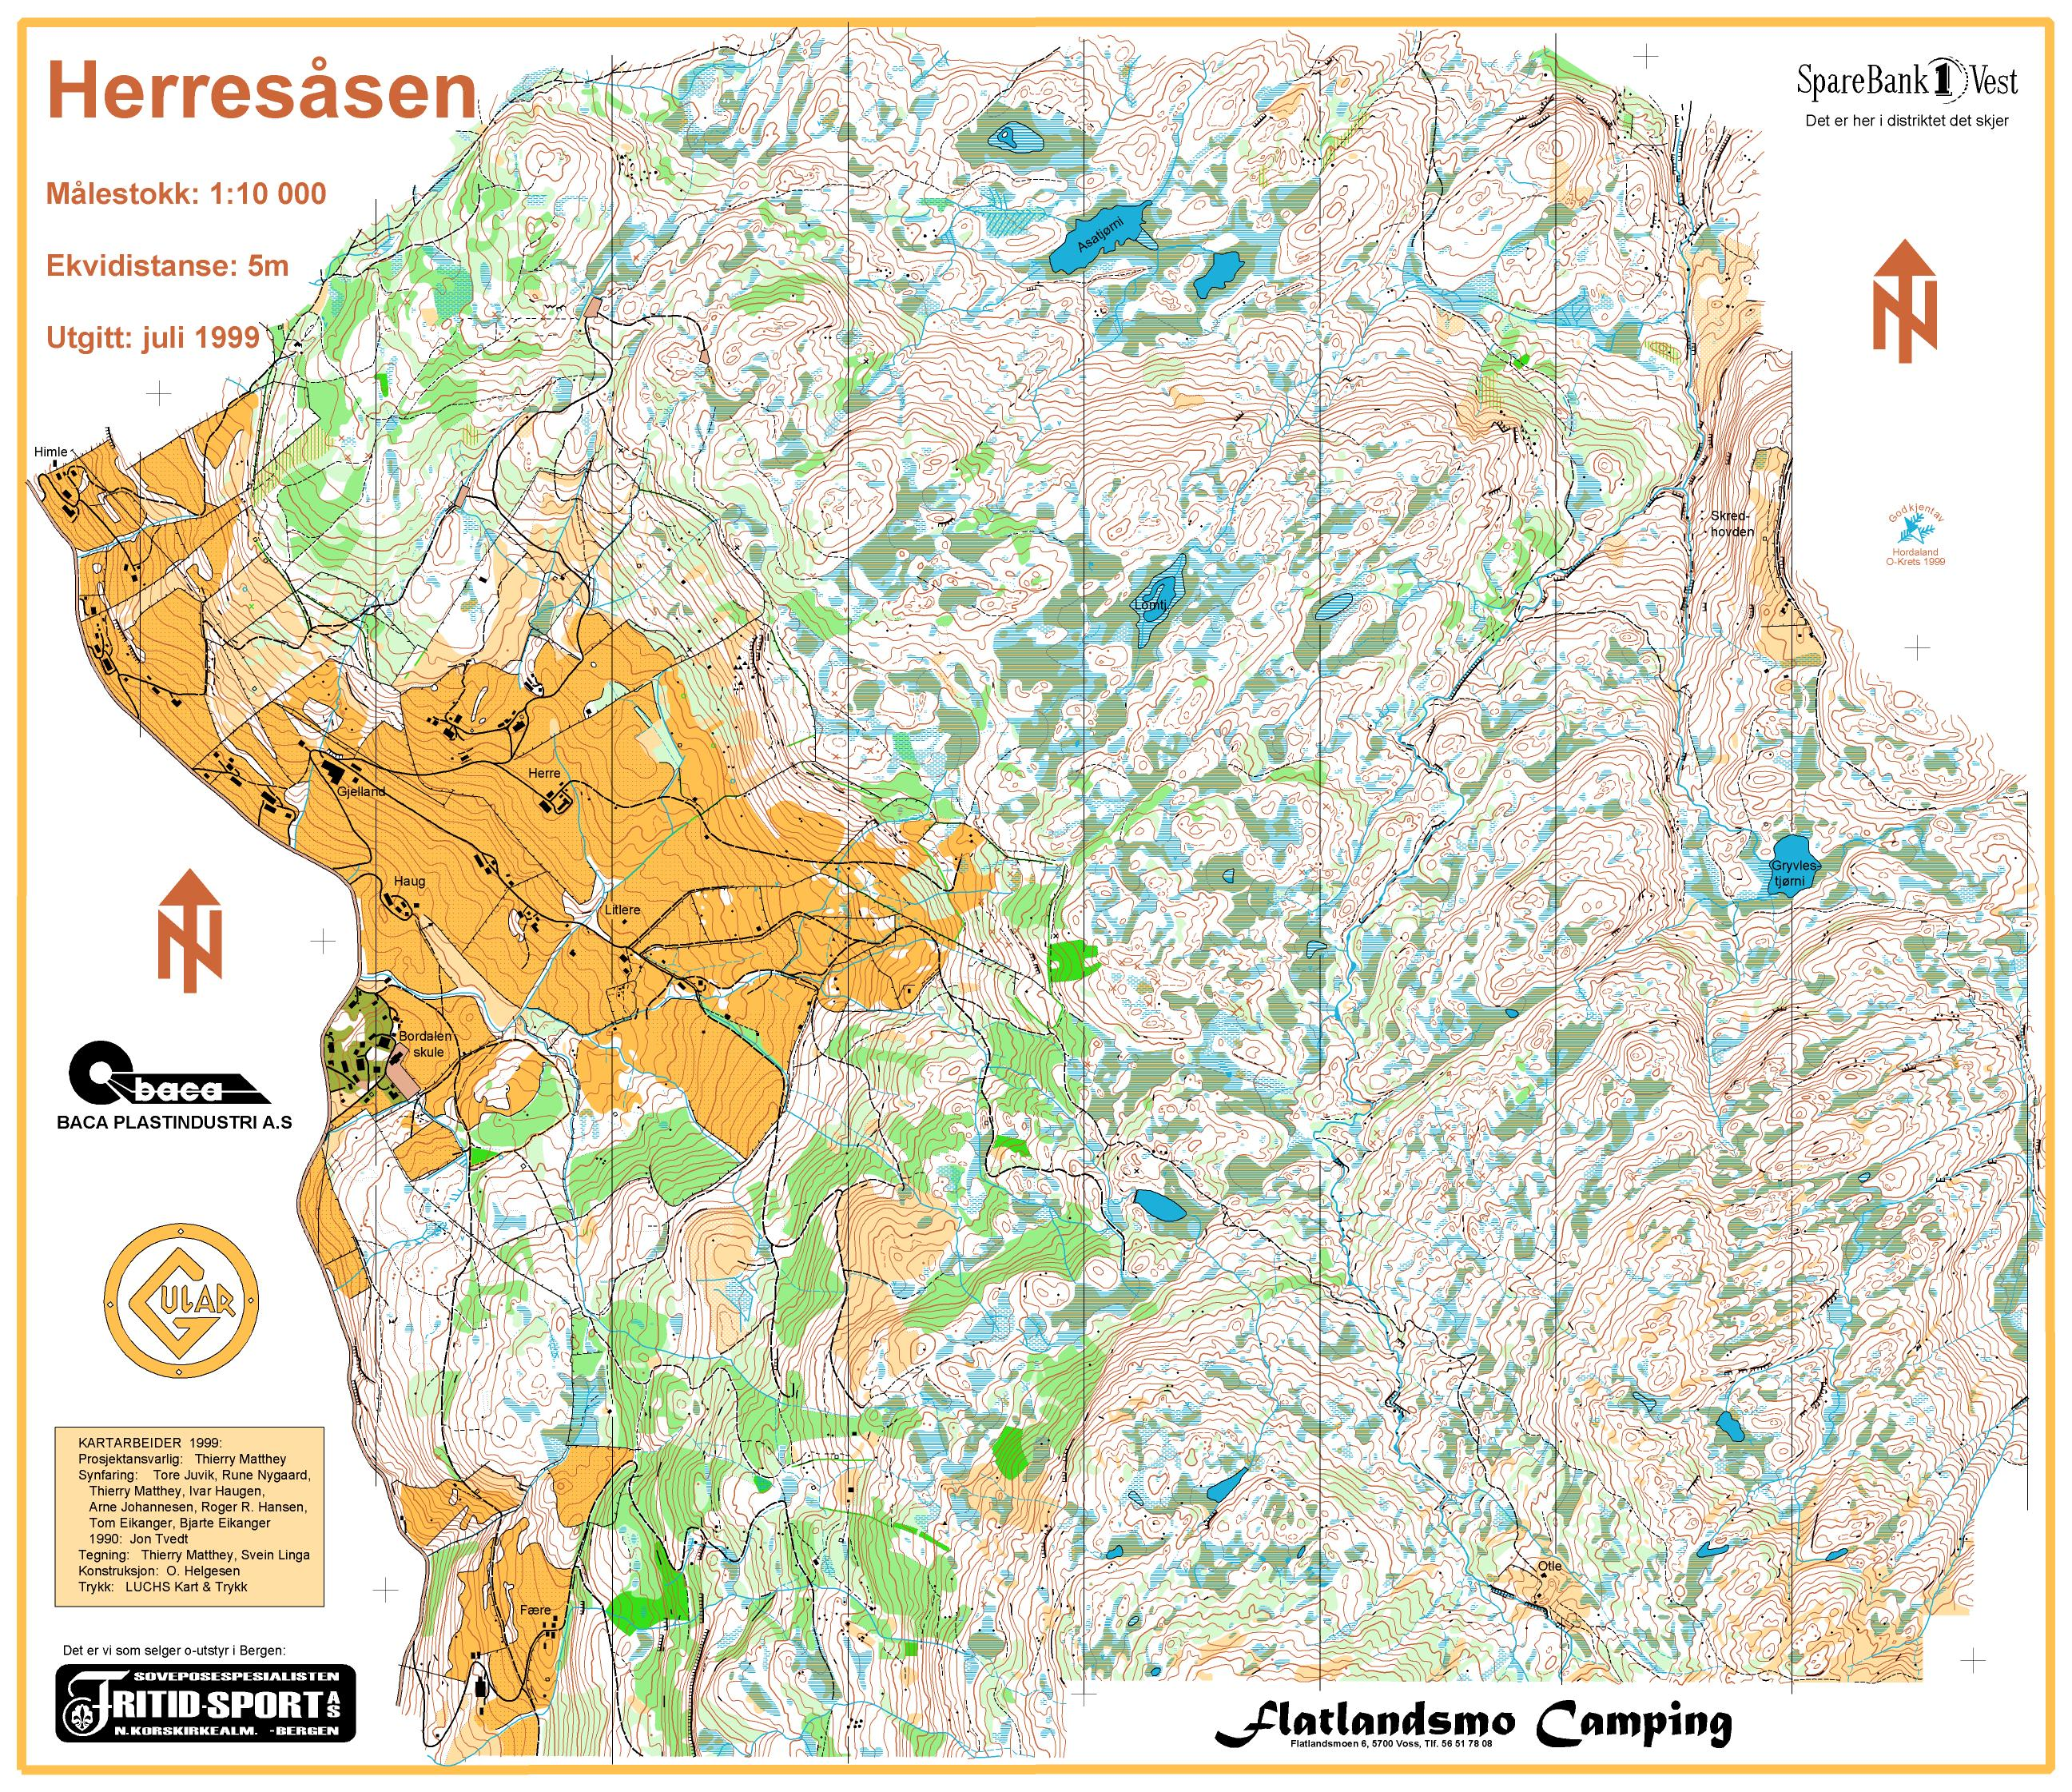 Nordvestgaloppen 1999 Day 2/3 (Map only) (1999-07-04)